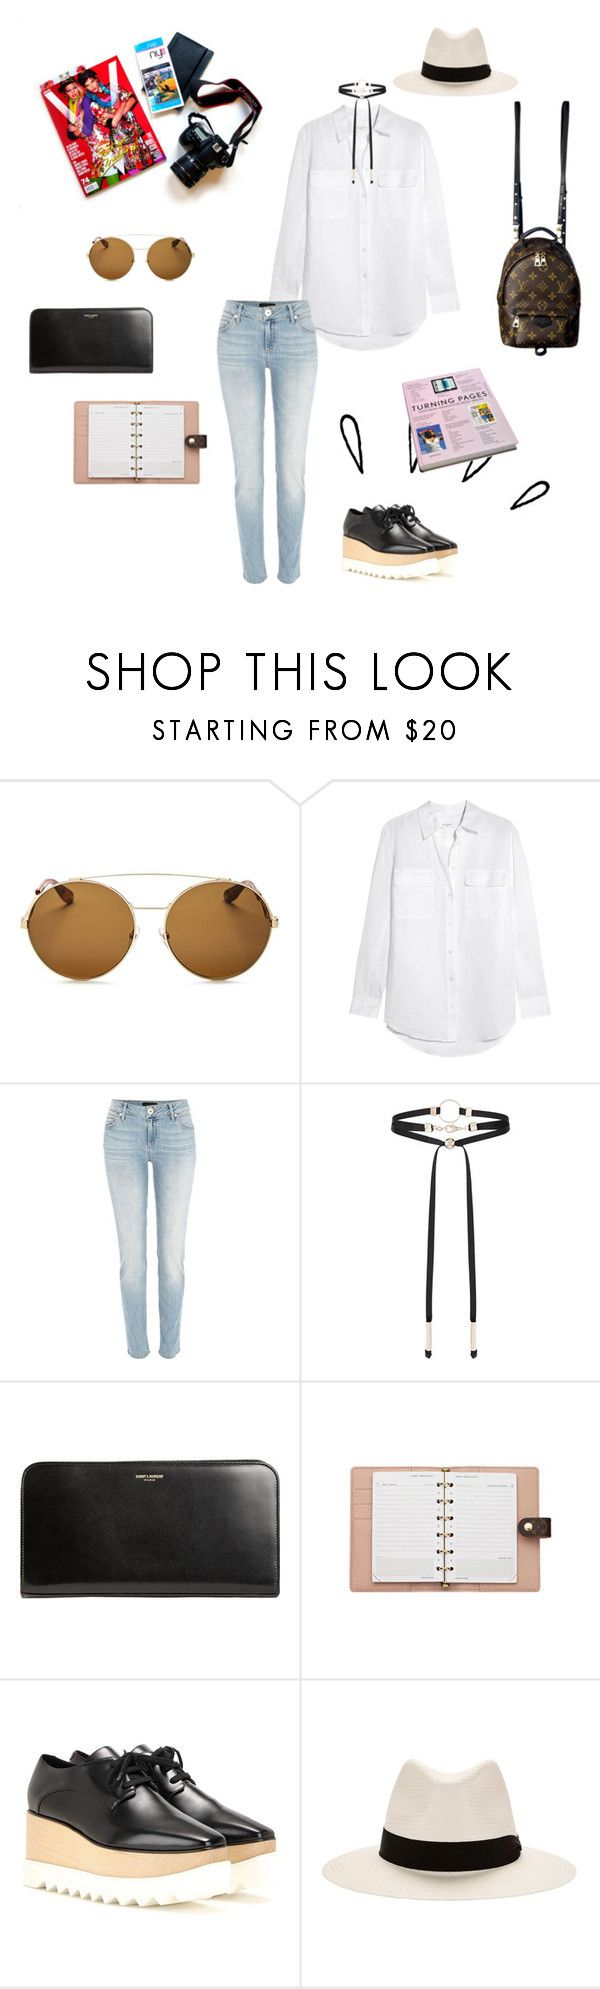 """Forever Pieces"" by shimaia ❤ liked on Polyvore featuring Givenchy, Equipment, River Island, Accessorize, Yves Saint Laurent, Louis Vuitton, STELLA McCARTNEY, Old Navy and rag & bone"